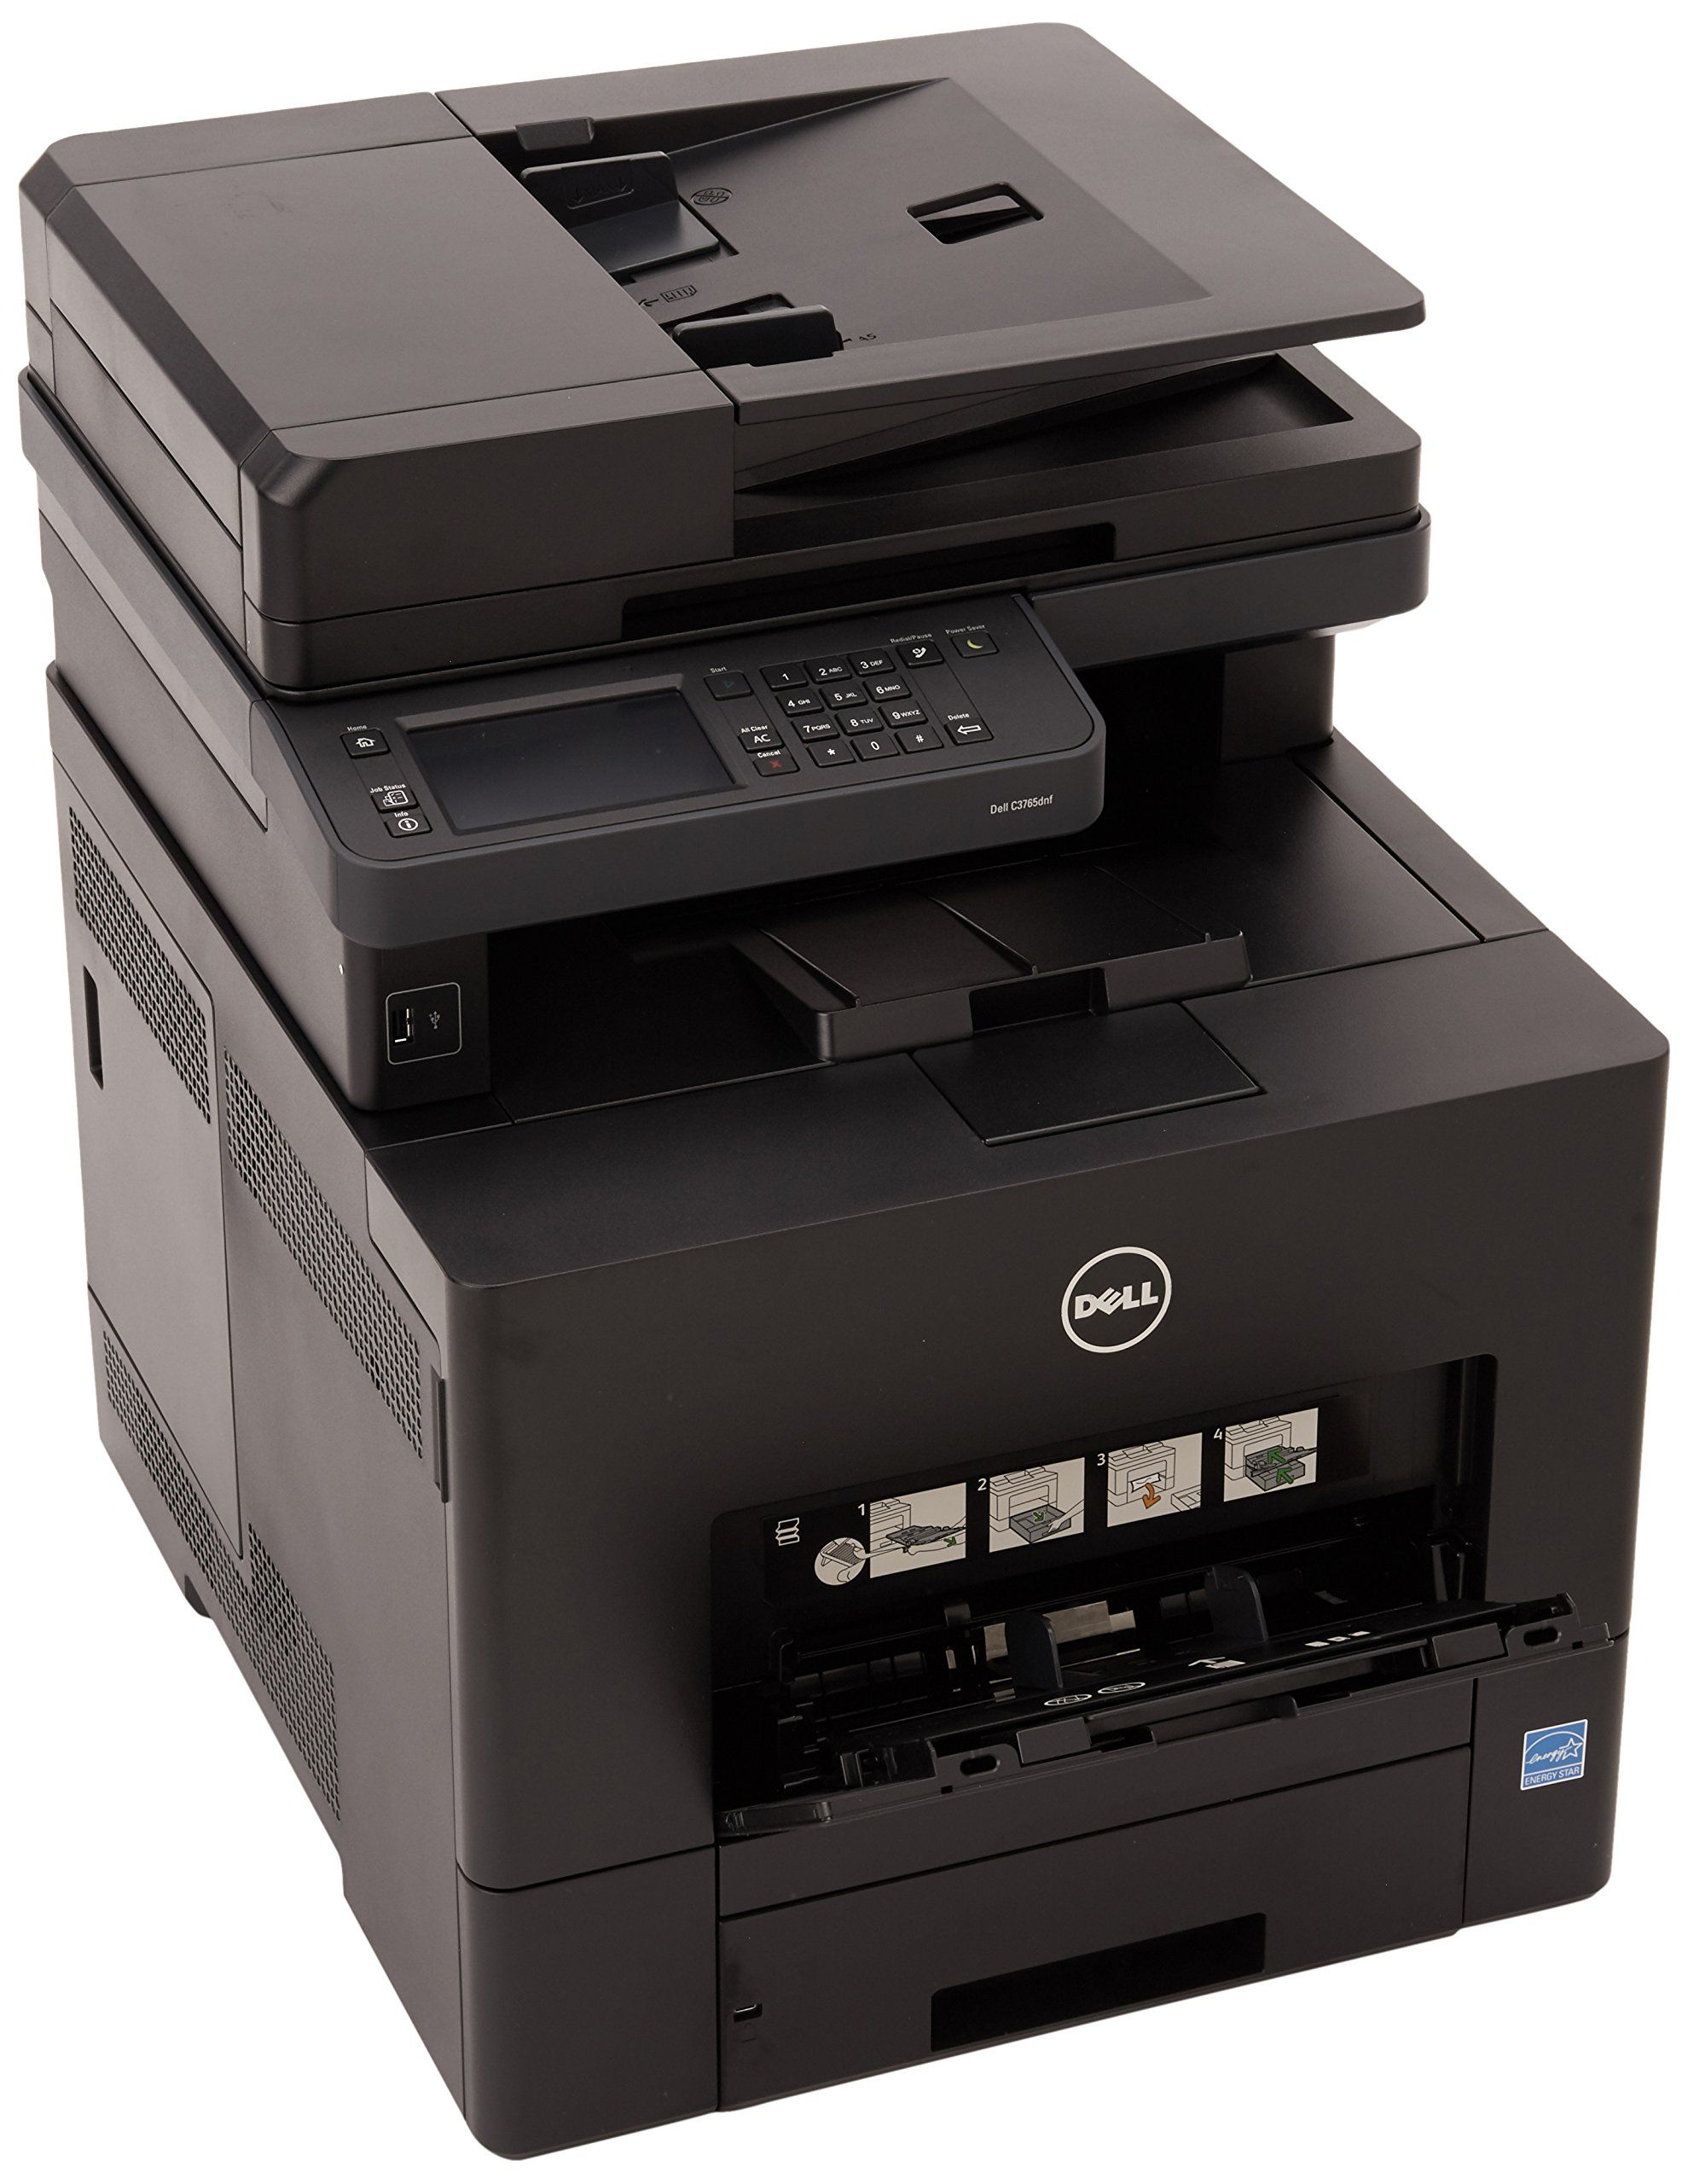 Best color printing quality - Dell C3765dnf Color Laser Printer 35 Ppm Get The Best Of Both Worlds Combine